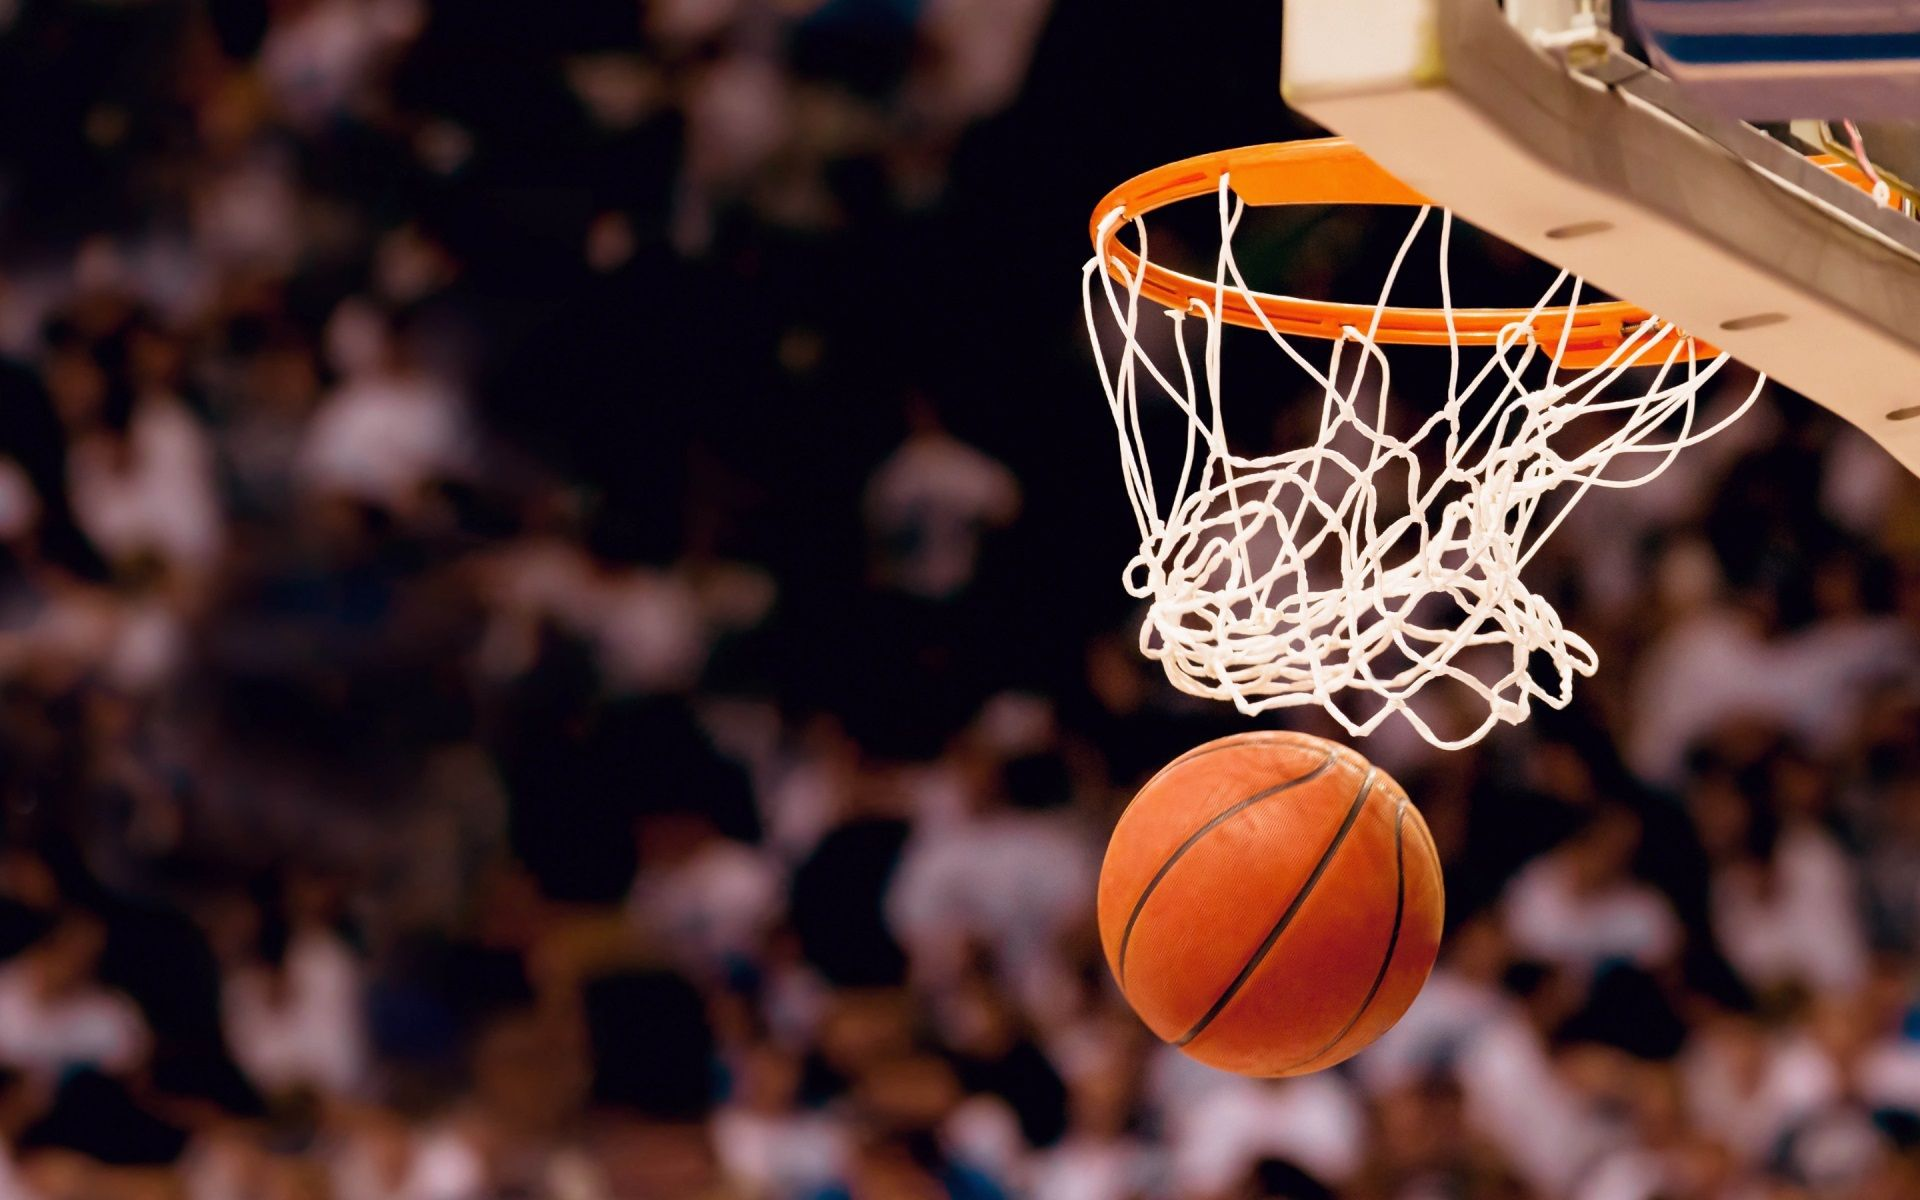 Simple Wallpaper High Quality Basketball - d1bcbfb1e621df00155ab5709a1de77a  Perfect Image Reference_55312.jpg